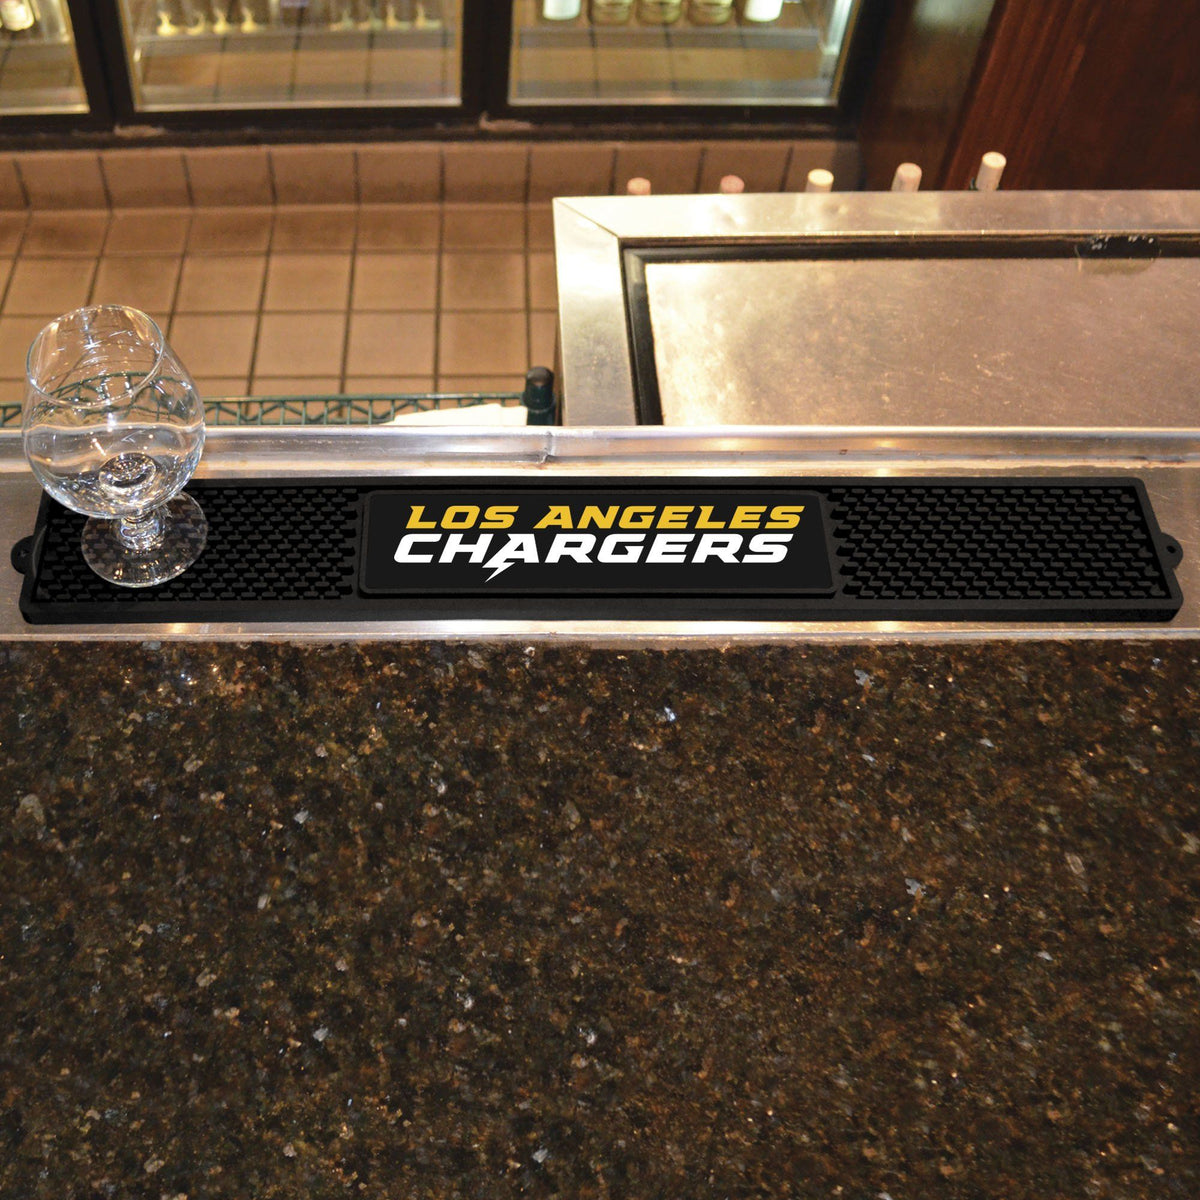 NFL - Drink Mat NFL Mats, Tailgate Accessory, Drink Mat, NFL, Leisure Fan Mats Los Angeles Chargers